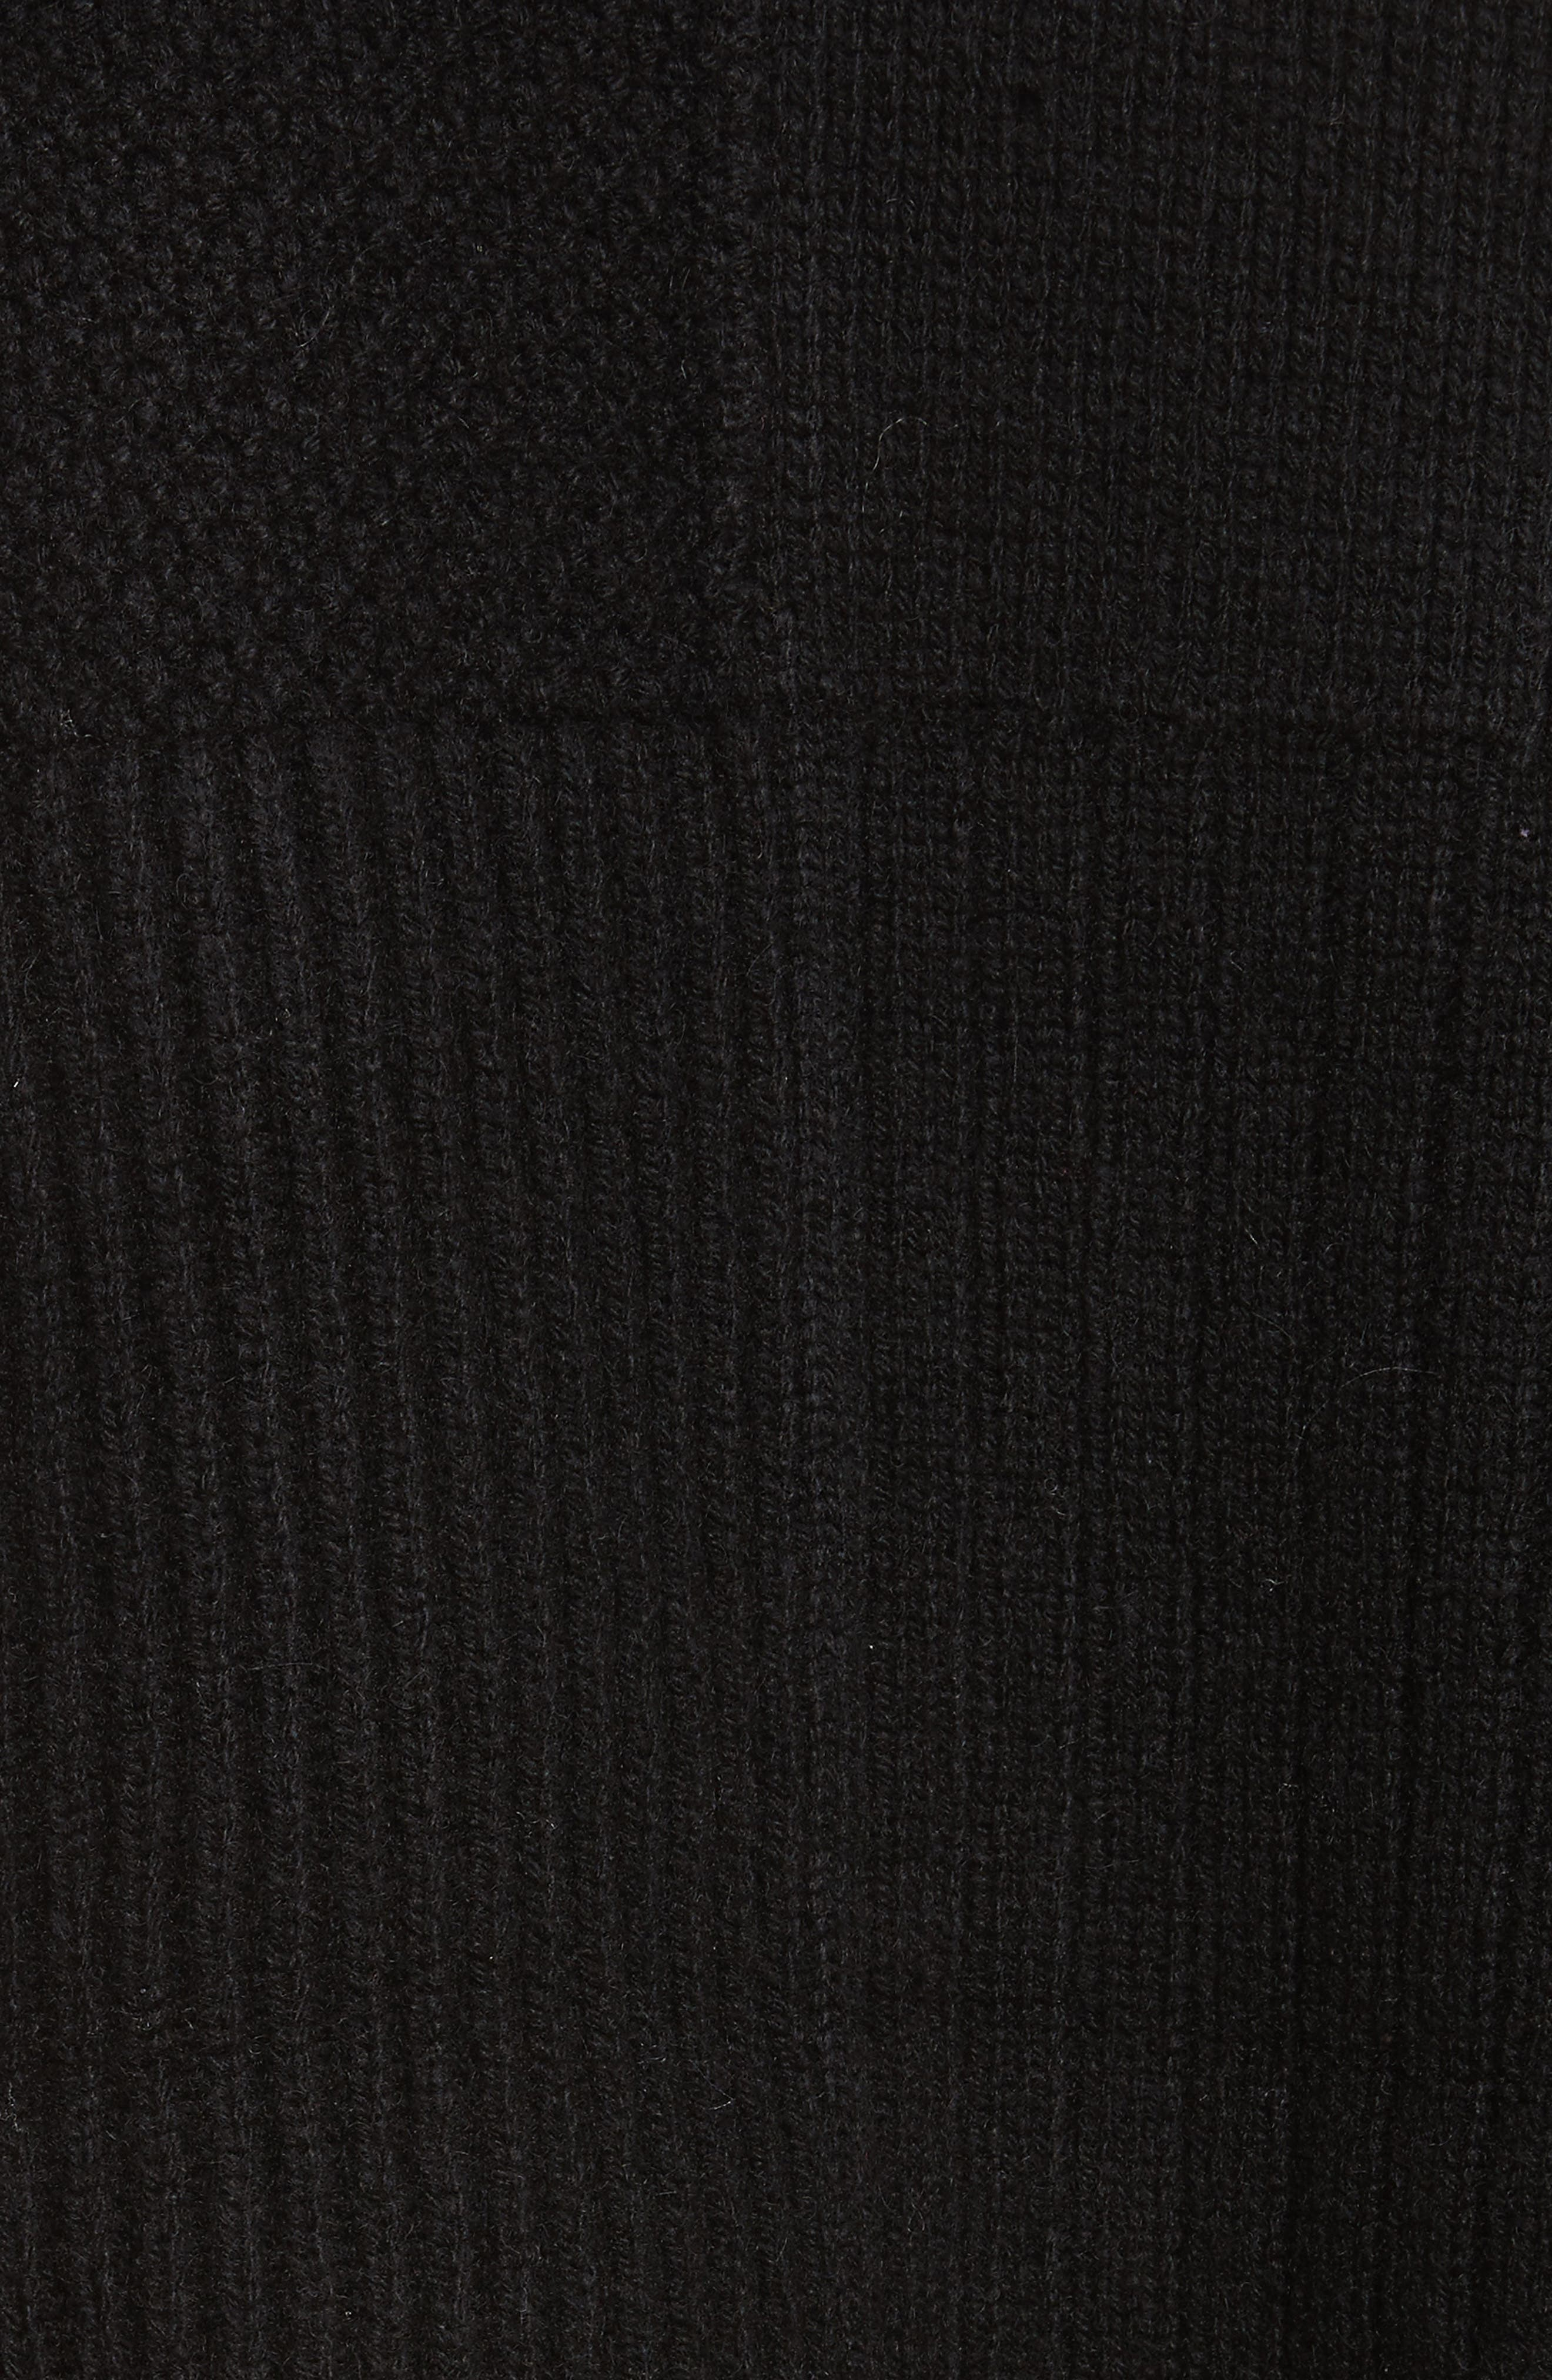 Wool Blend Textured Pullover,                             Alternate thumbnail 5, color,                             Black